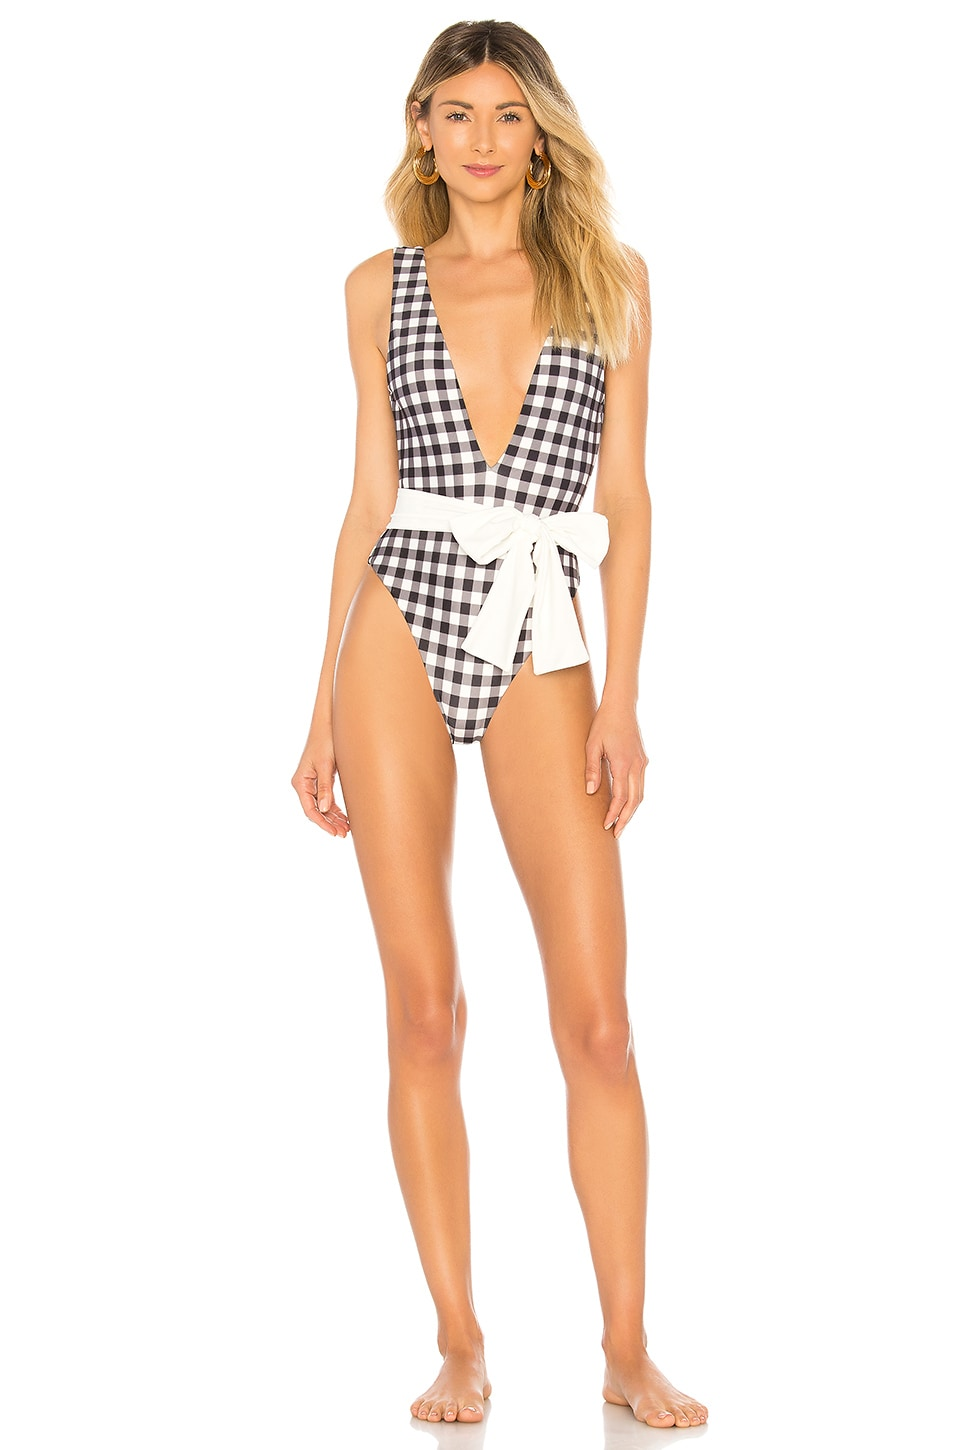 Tularosa Claudia One Piece in Black Gingham